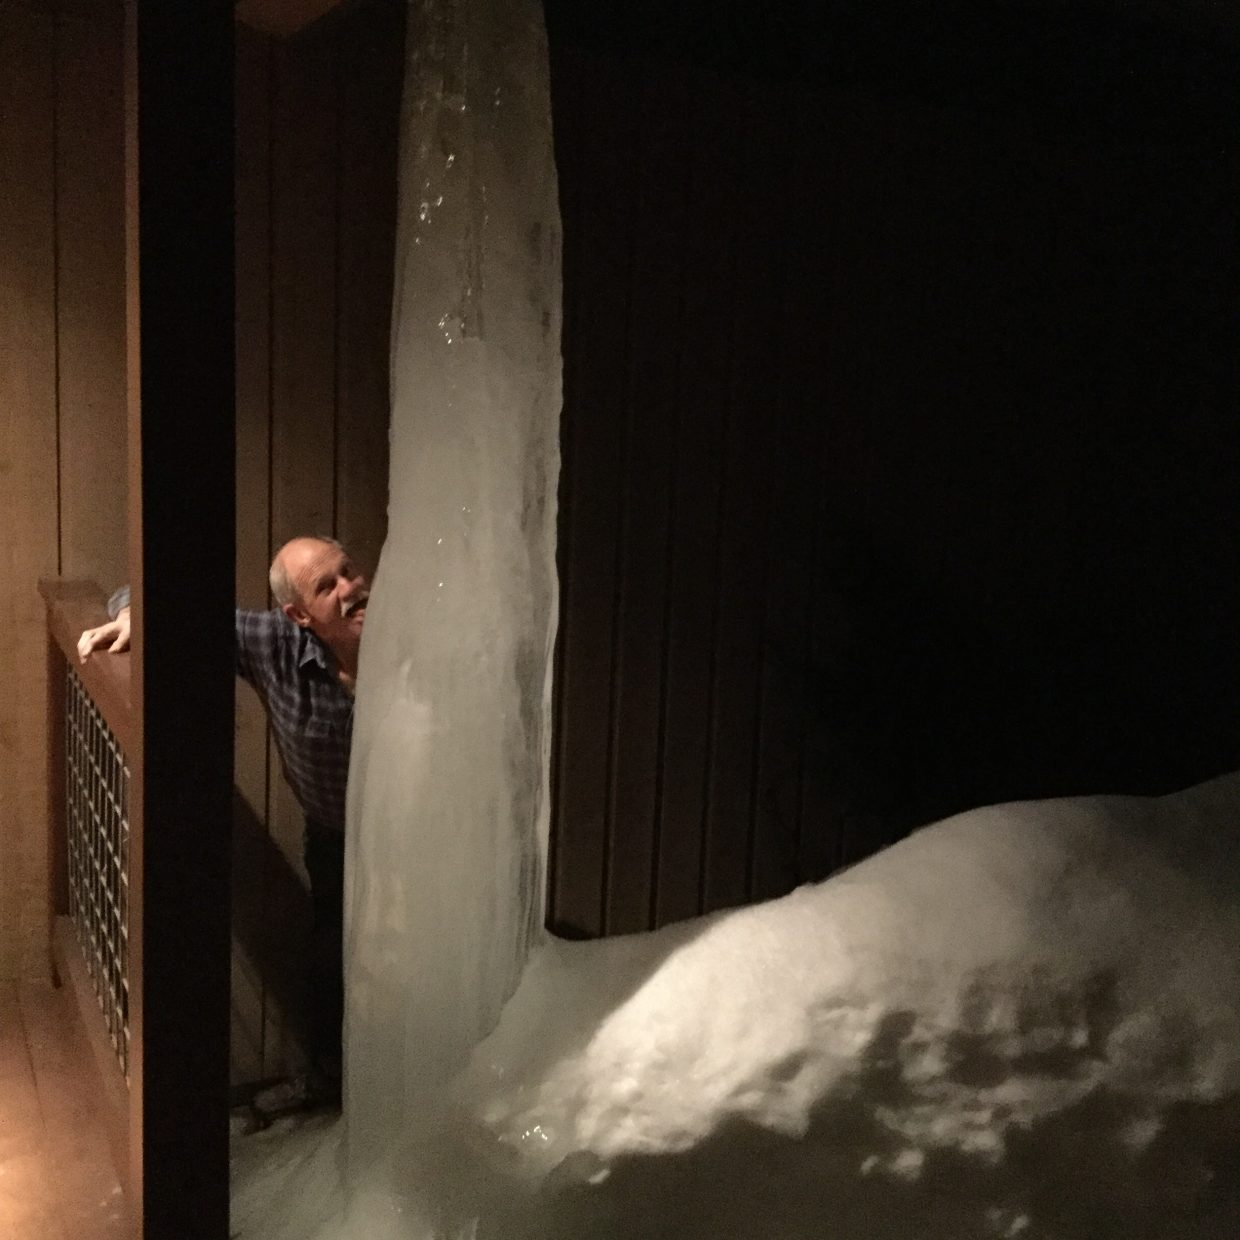 """Daredevil Doug (Smith) tests the ice column with his tongue. And he is still there."" Submitted by Sally Wackowski."